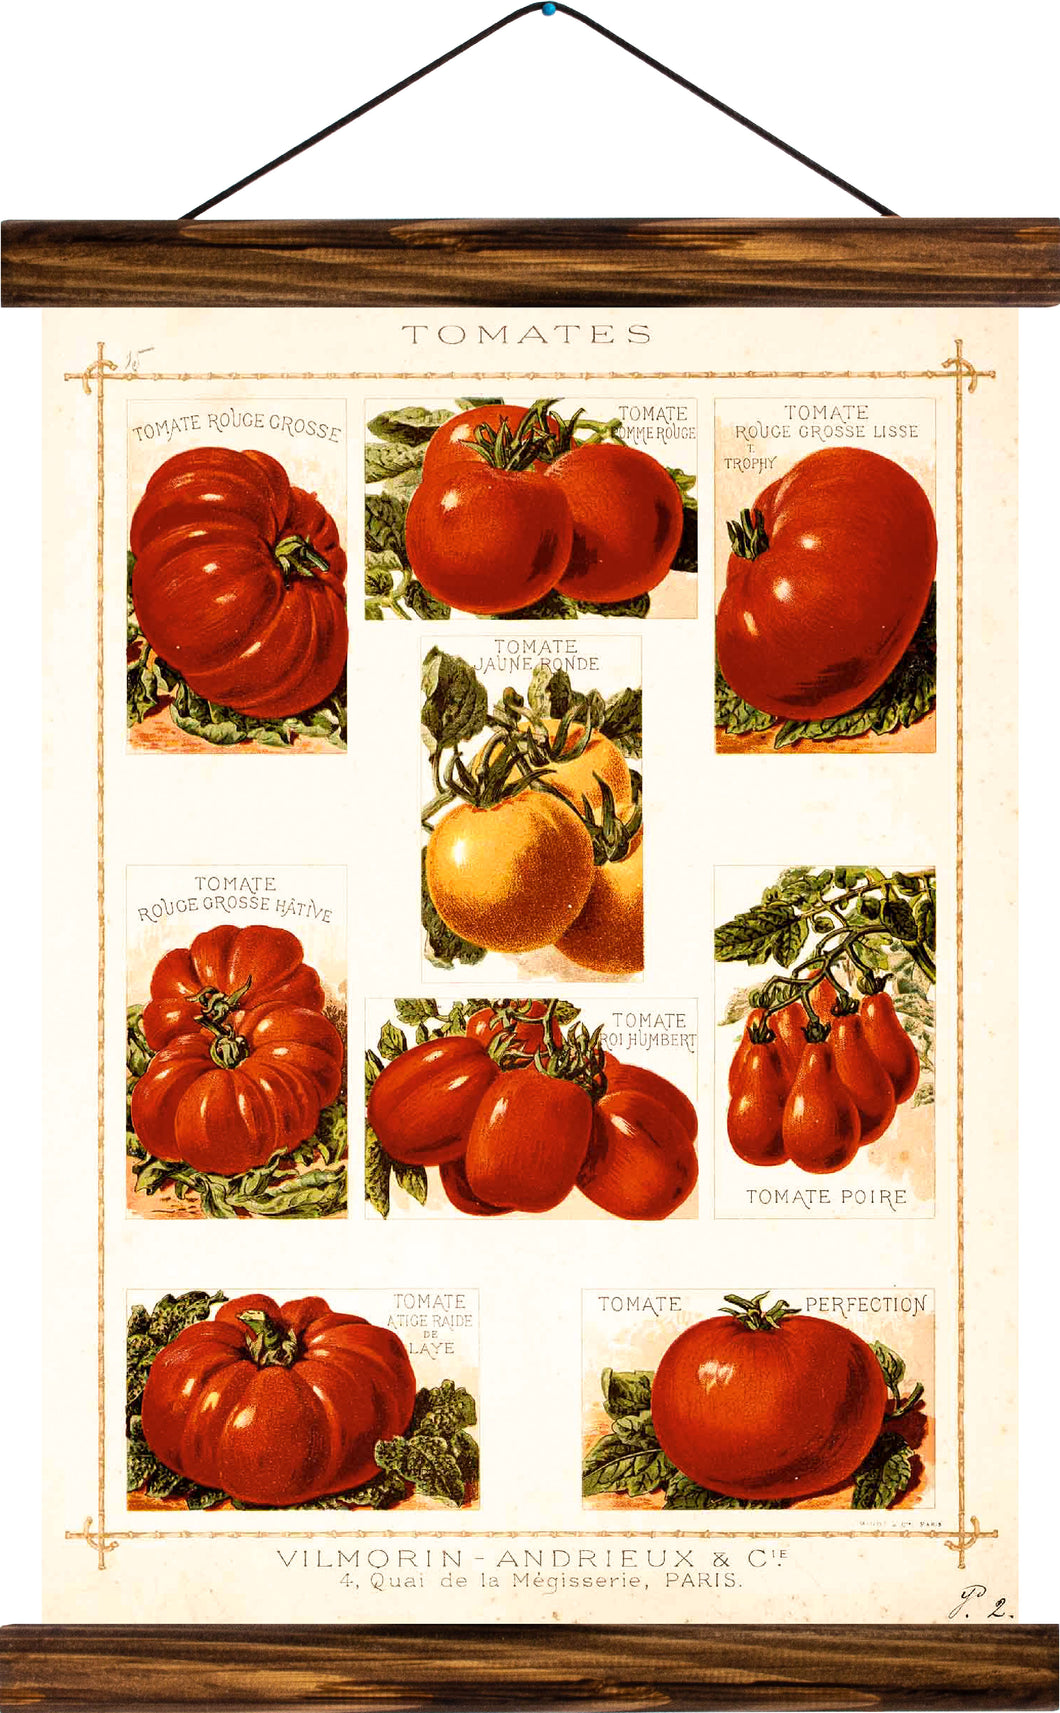 Tomatoes, reprint on linen